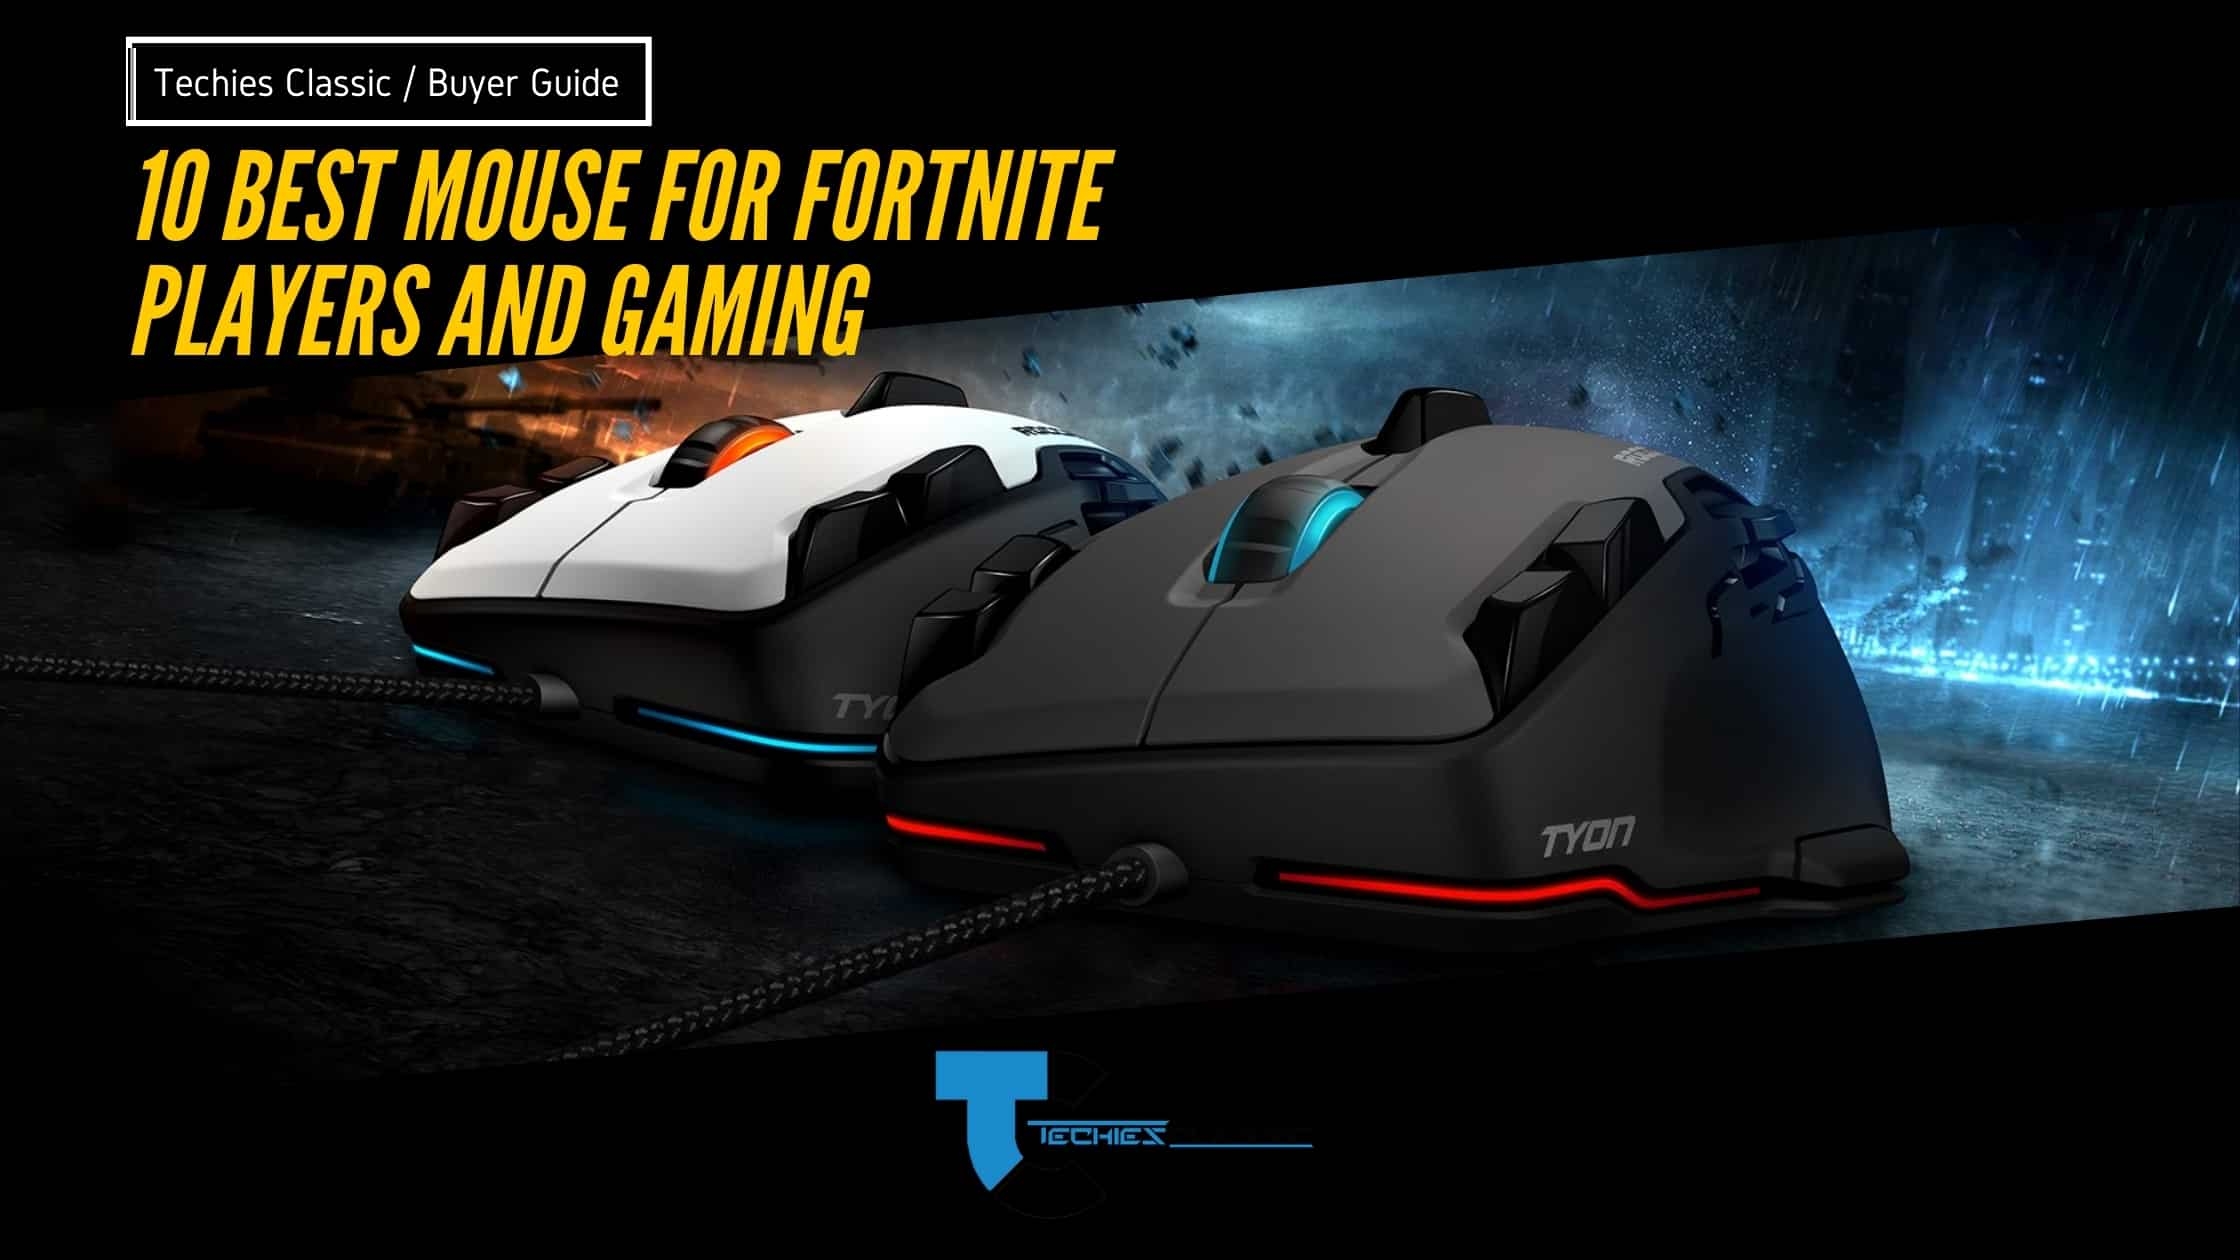 10 Best Mouse For Fortnite Players And Gaming